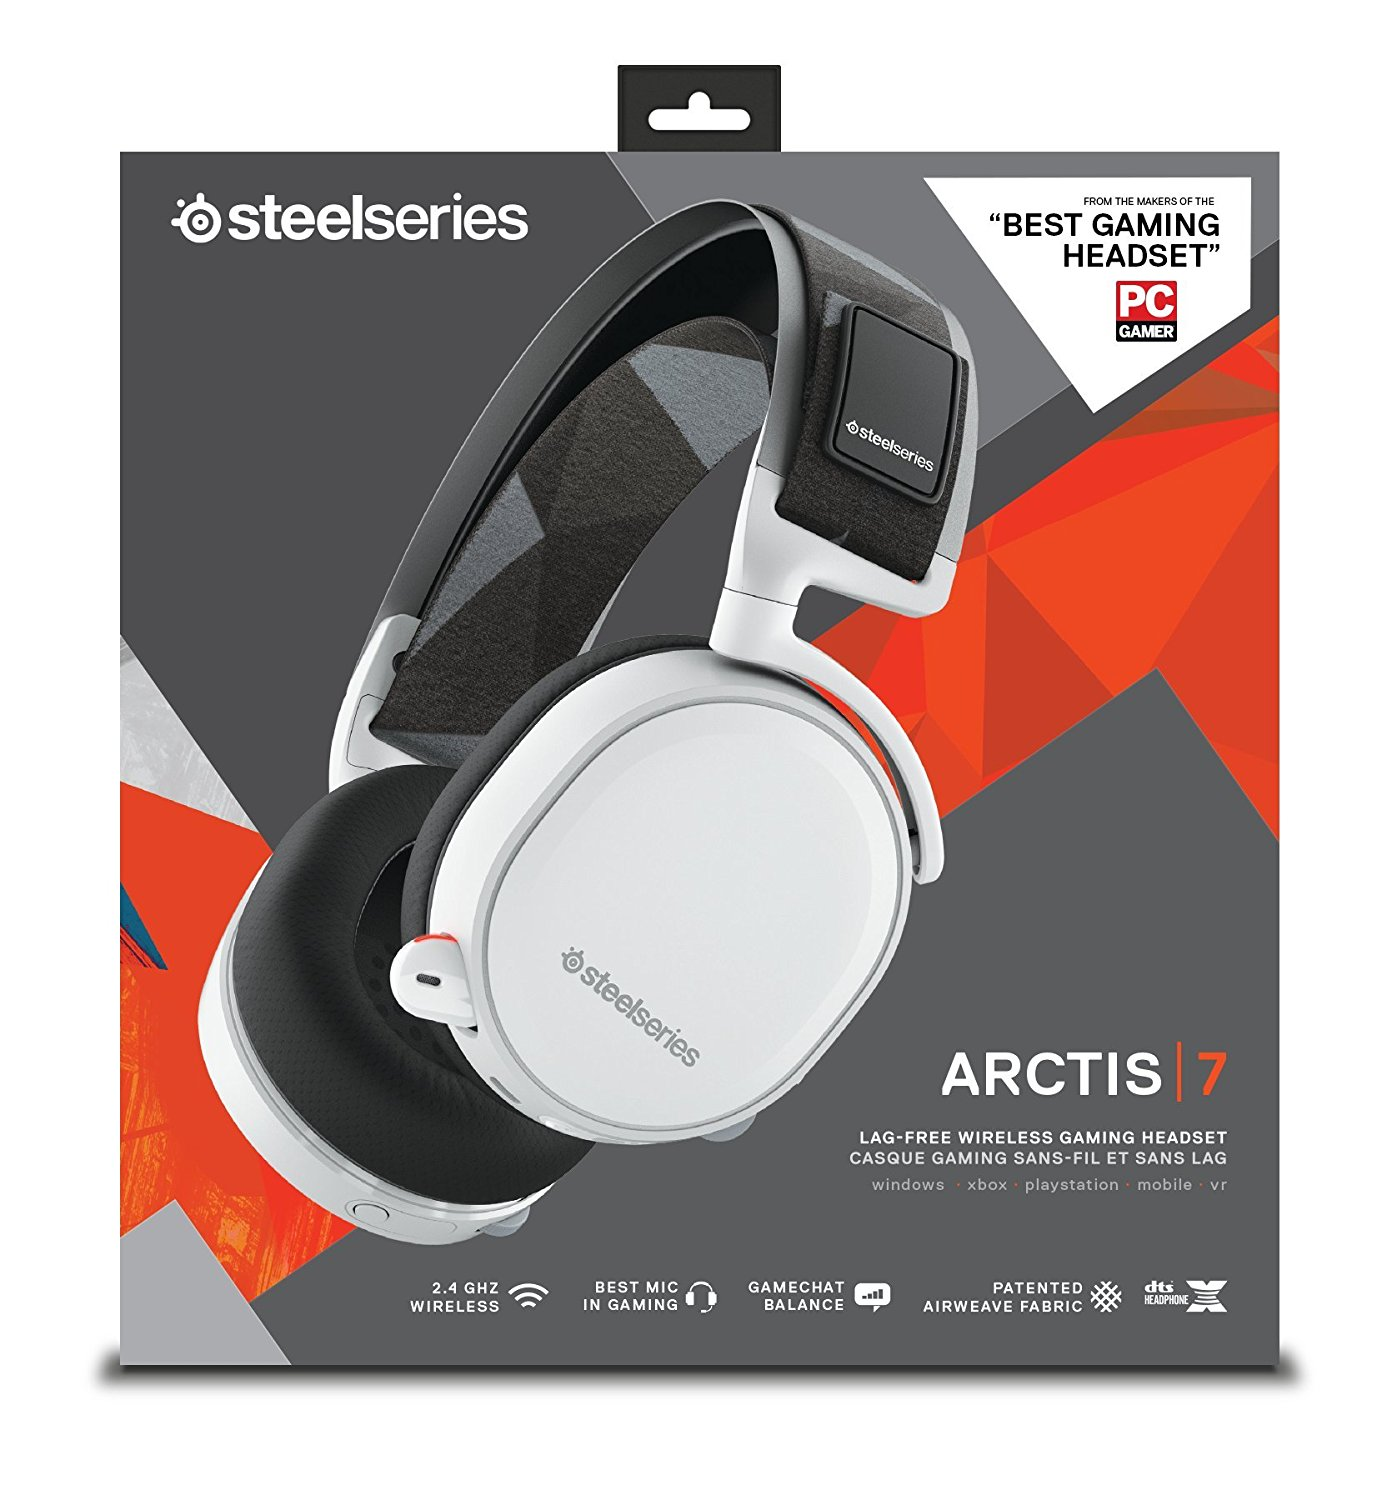 Steelseries Arctis 7 With 71 Dts Headphonex White Wireless Vivan Power Oval 2a Output Single Usb Charger Box Content Product Information Guide Transmitter Mobile Console Cable Micro Charging